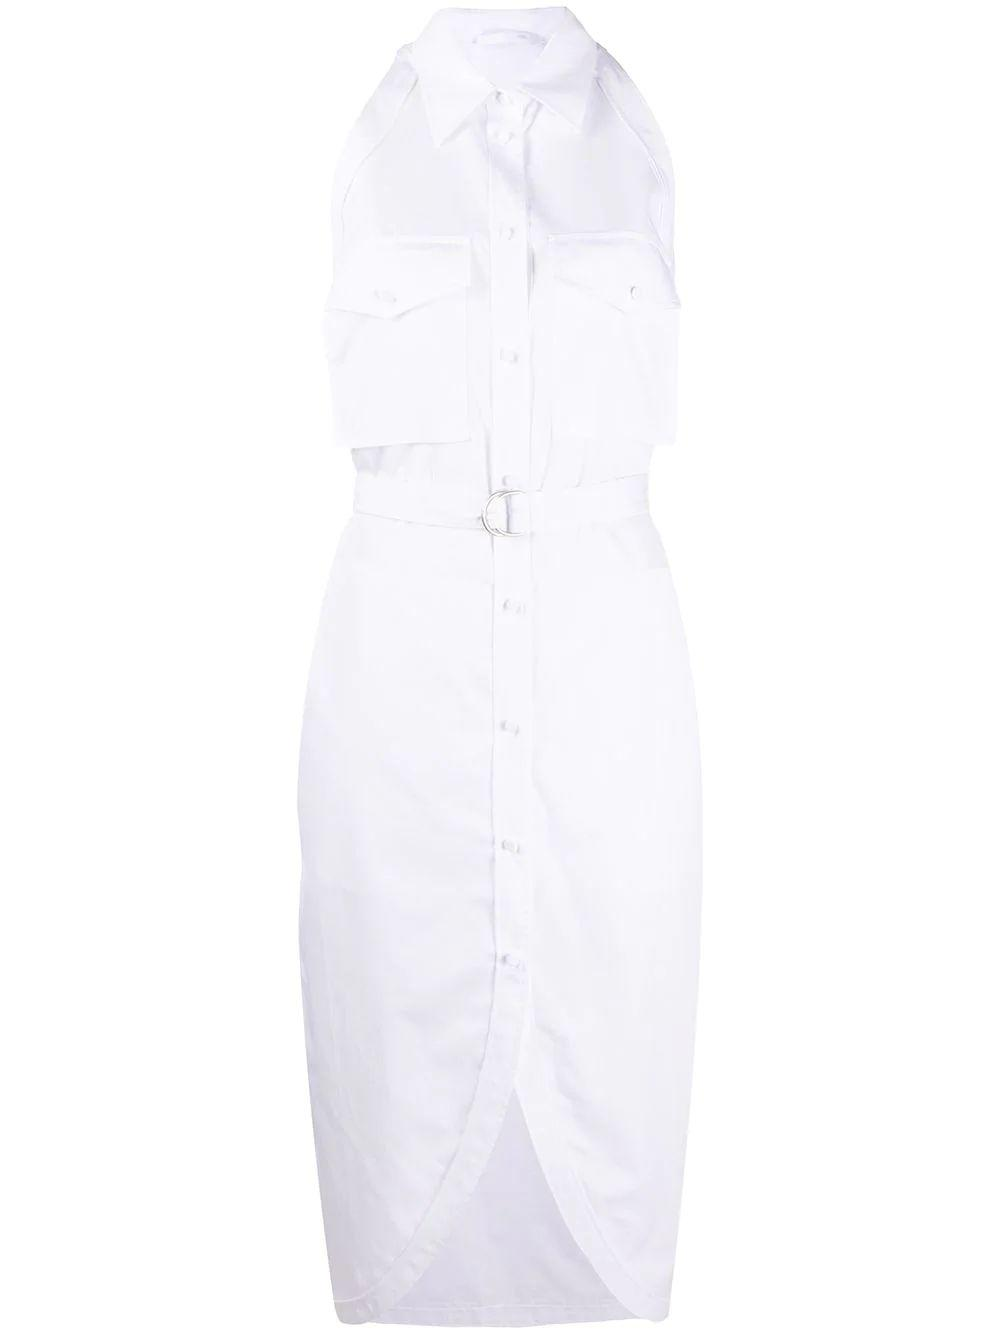 Italian Cotton Poplin Shirt Dress Item # K01HW608